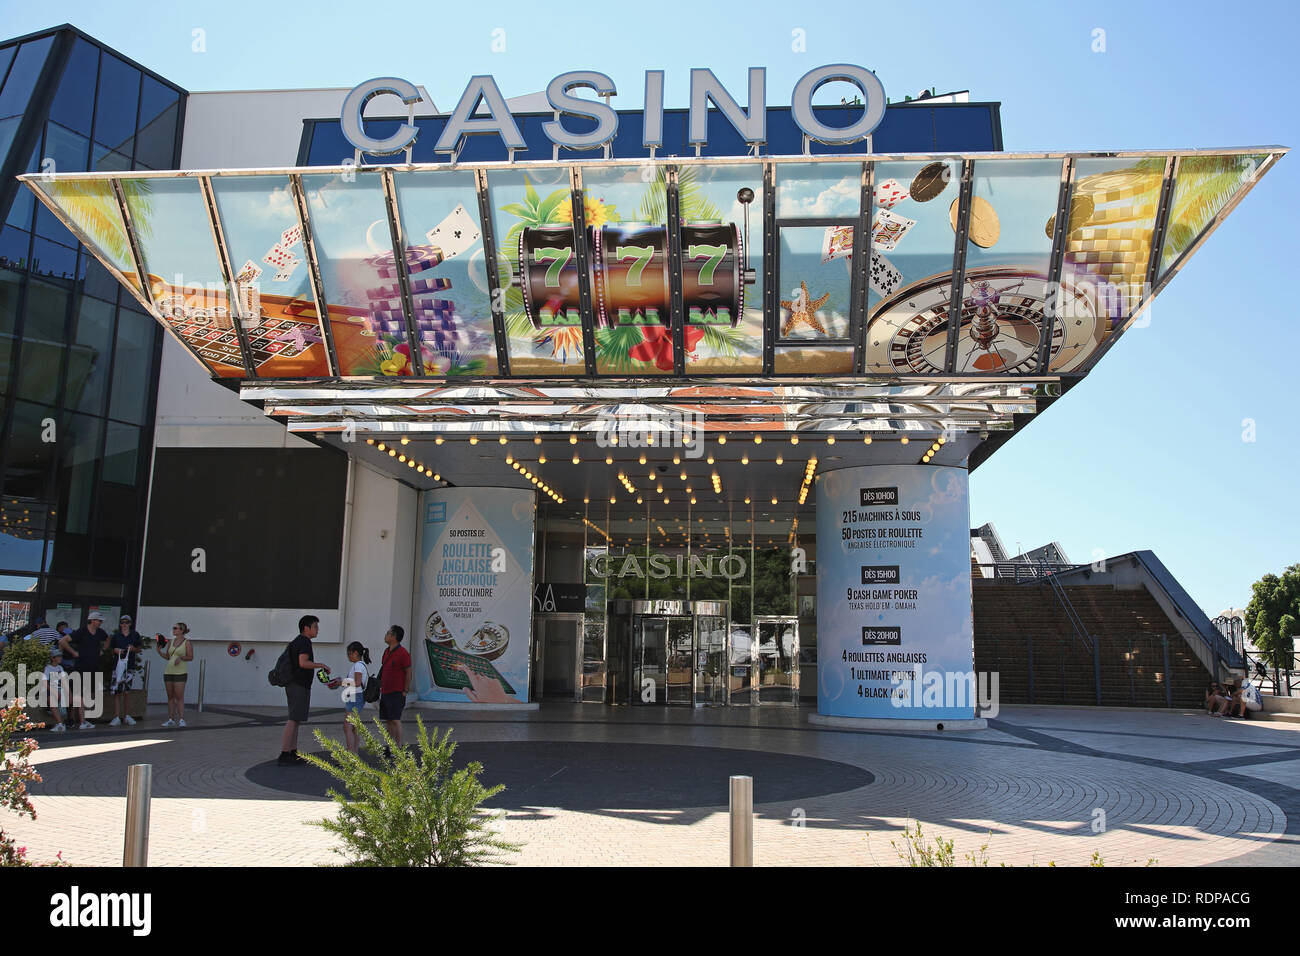 Casino, Cannes in the south of France - Stock Image